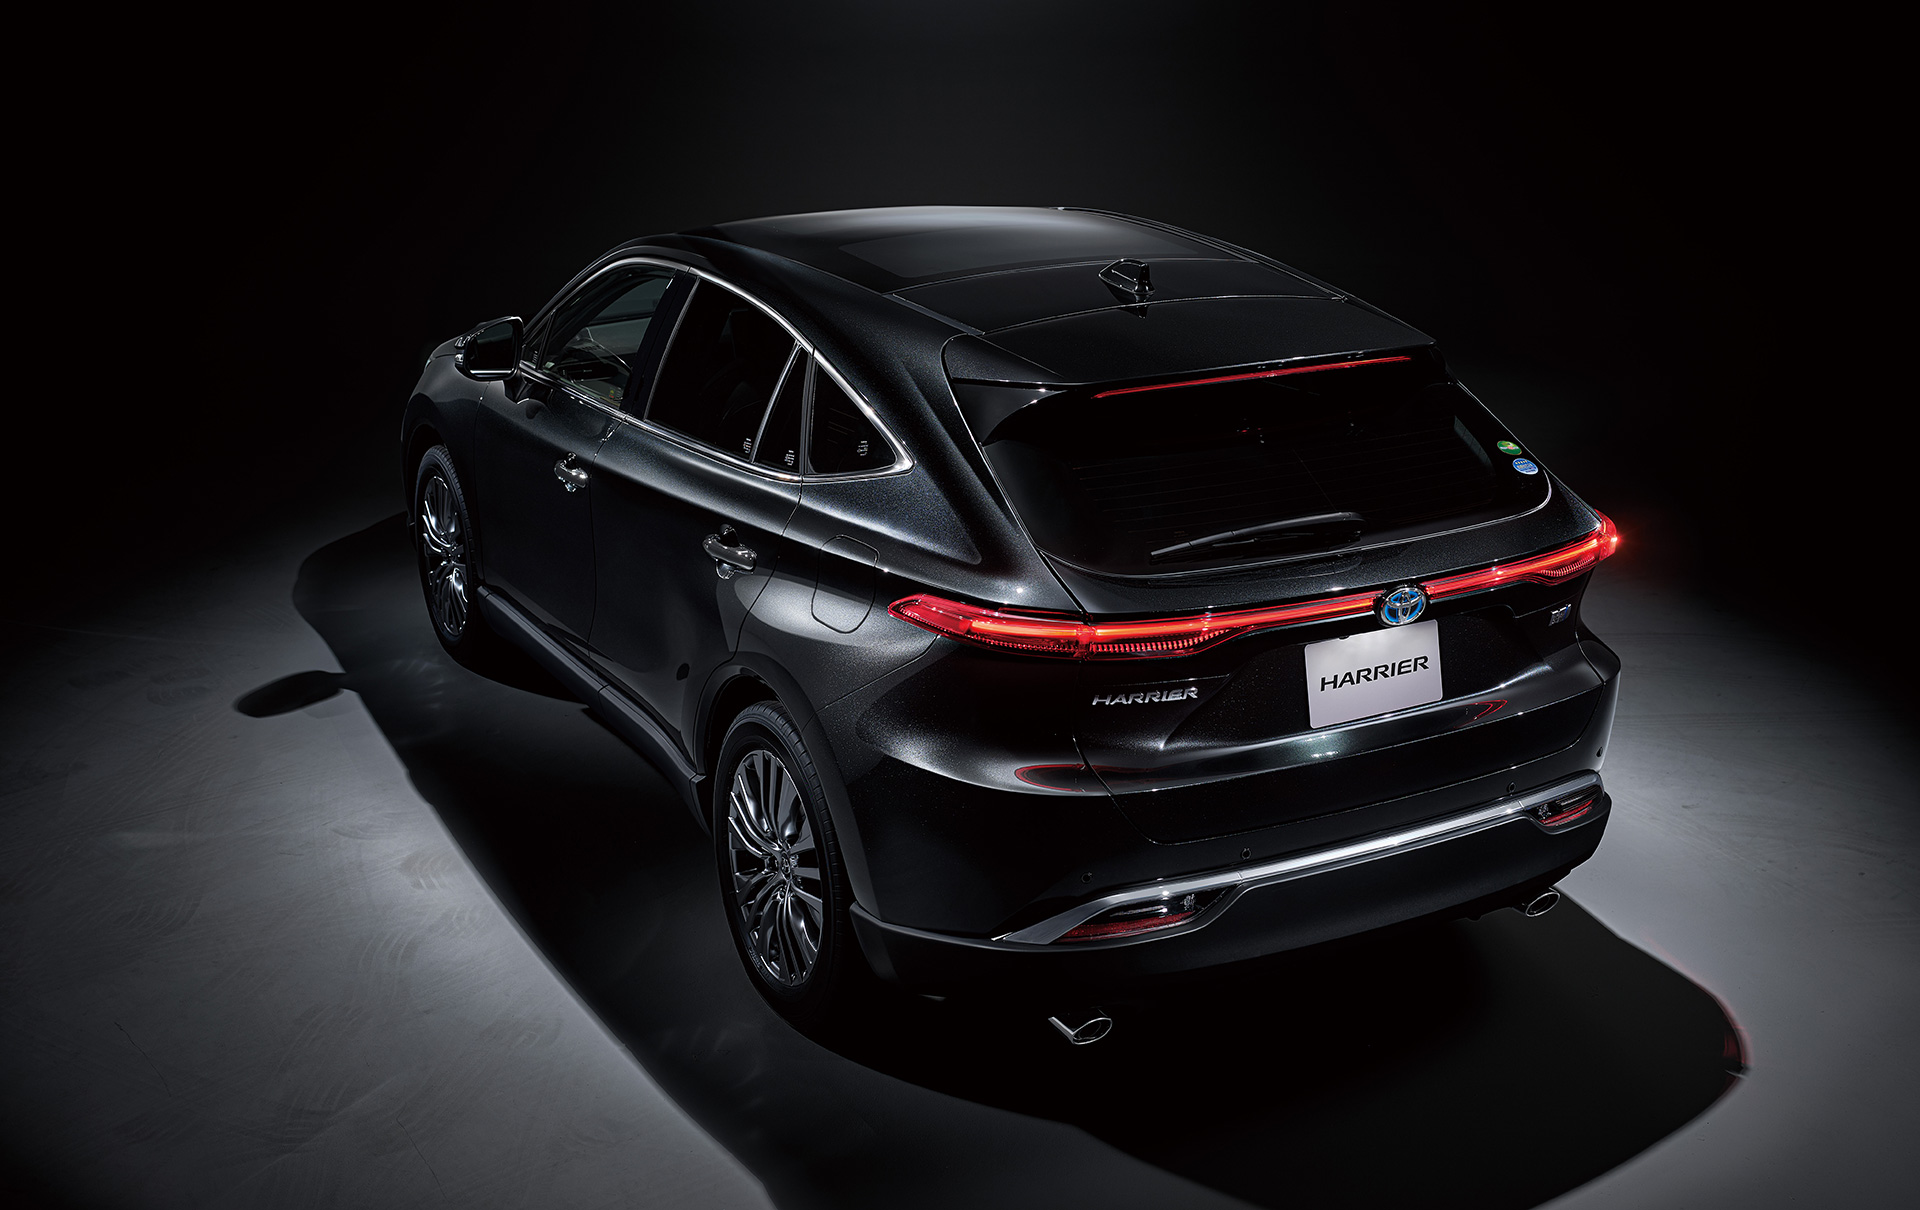 Toyota Launches New Model Harrier in Japan - Image 7